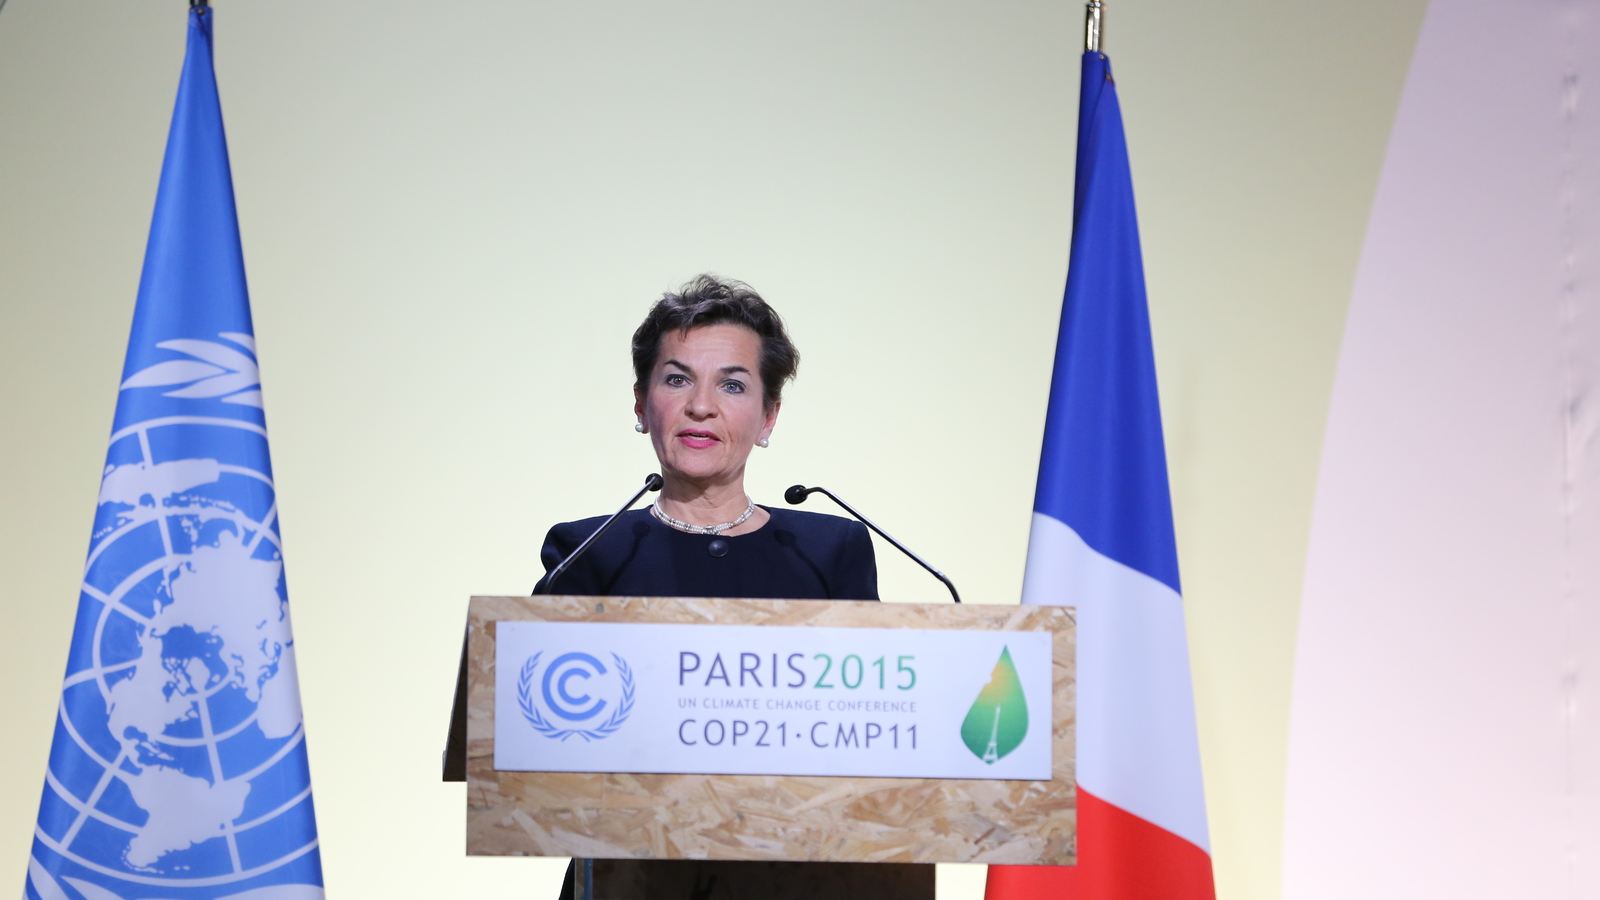 Christiana Figueres at the Paris Climate Change Conference in 2015